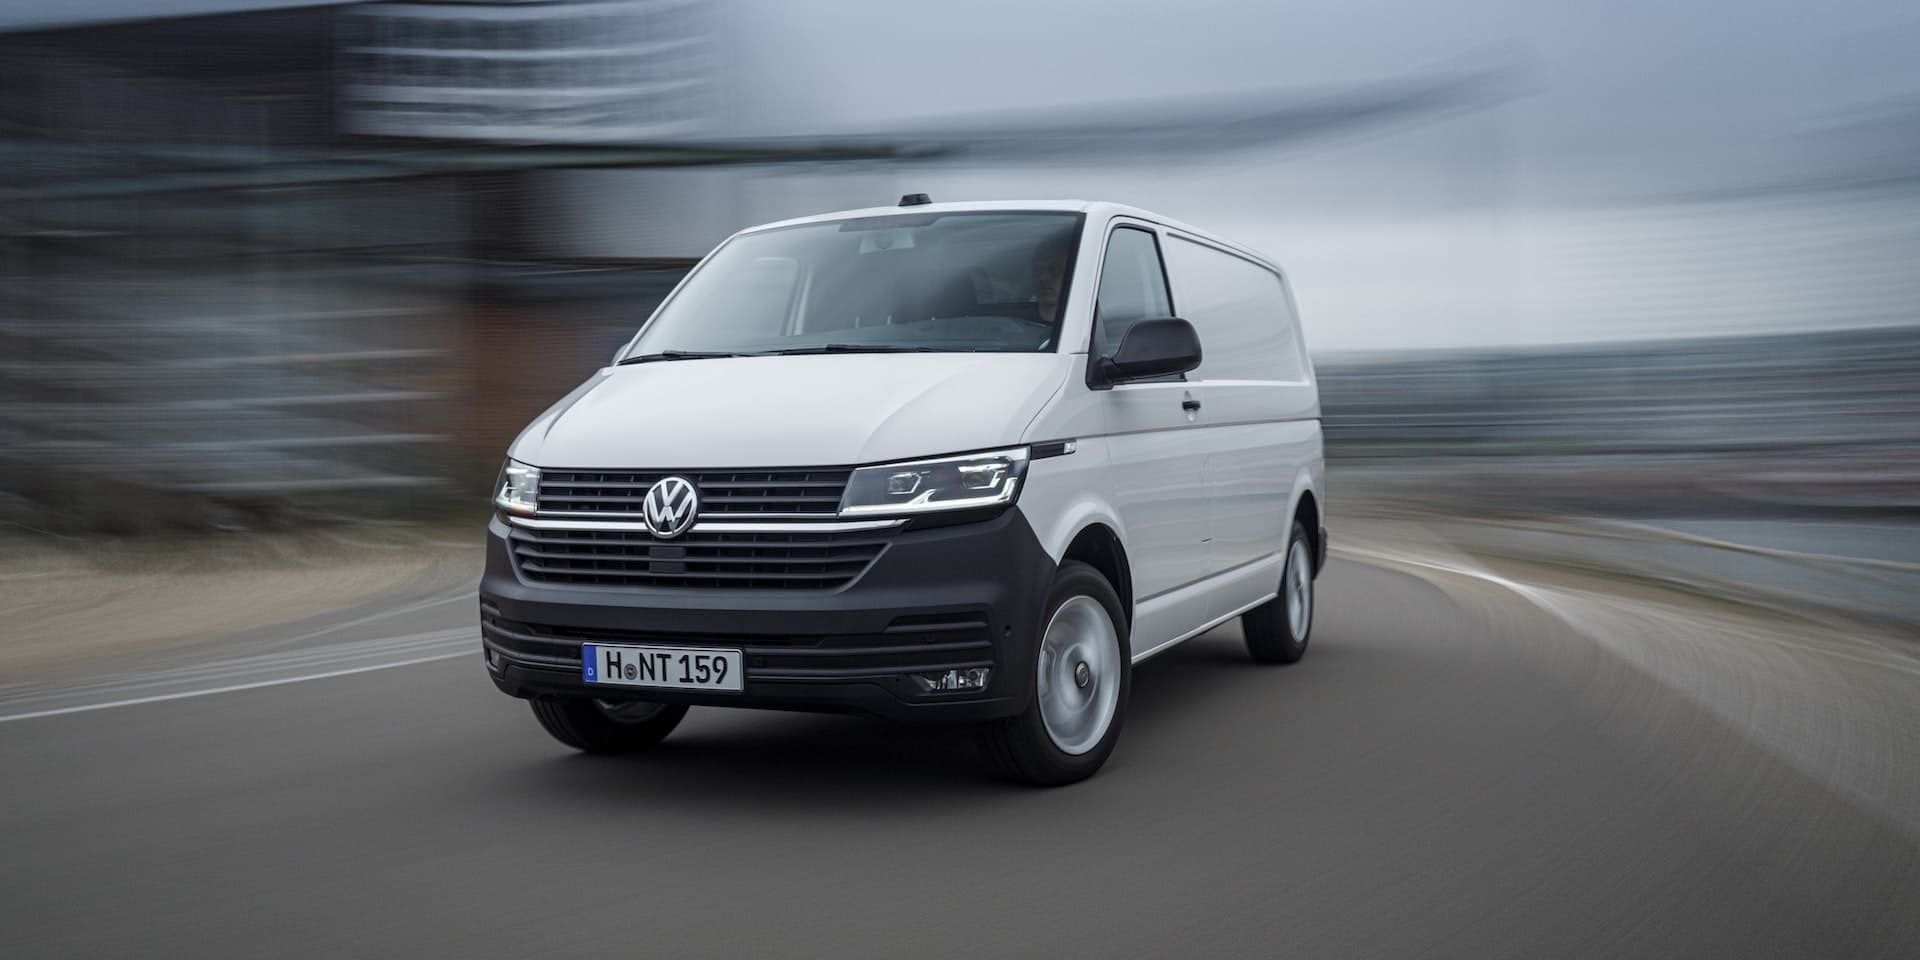 Volkswagen Transporter 6.1 test drive wallpaper | The Van Expert